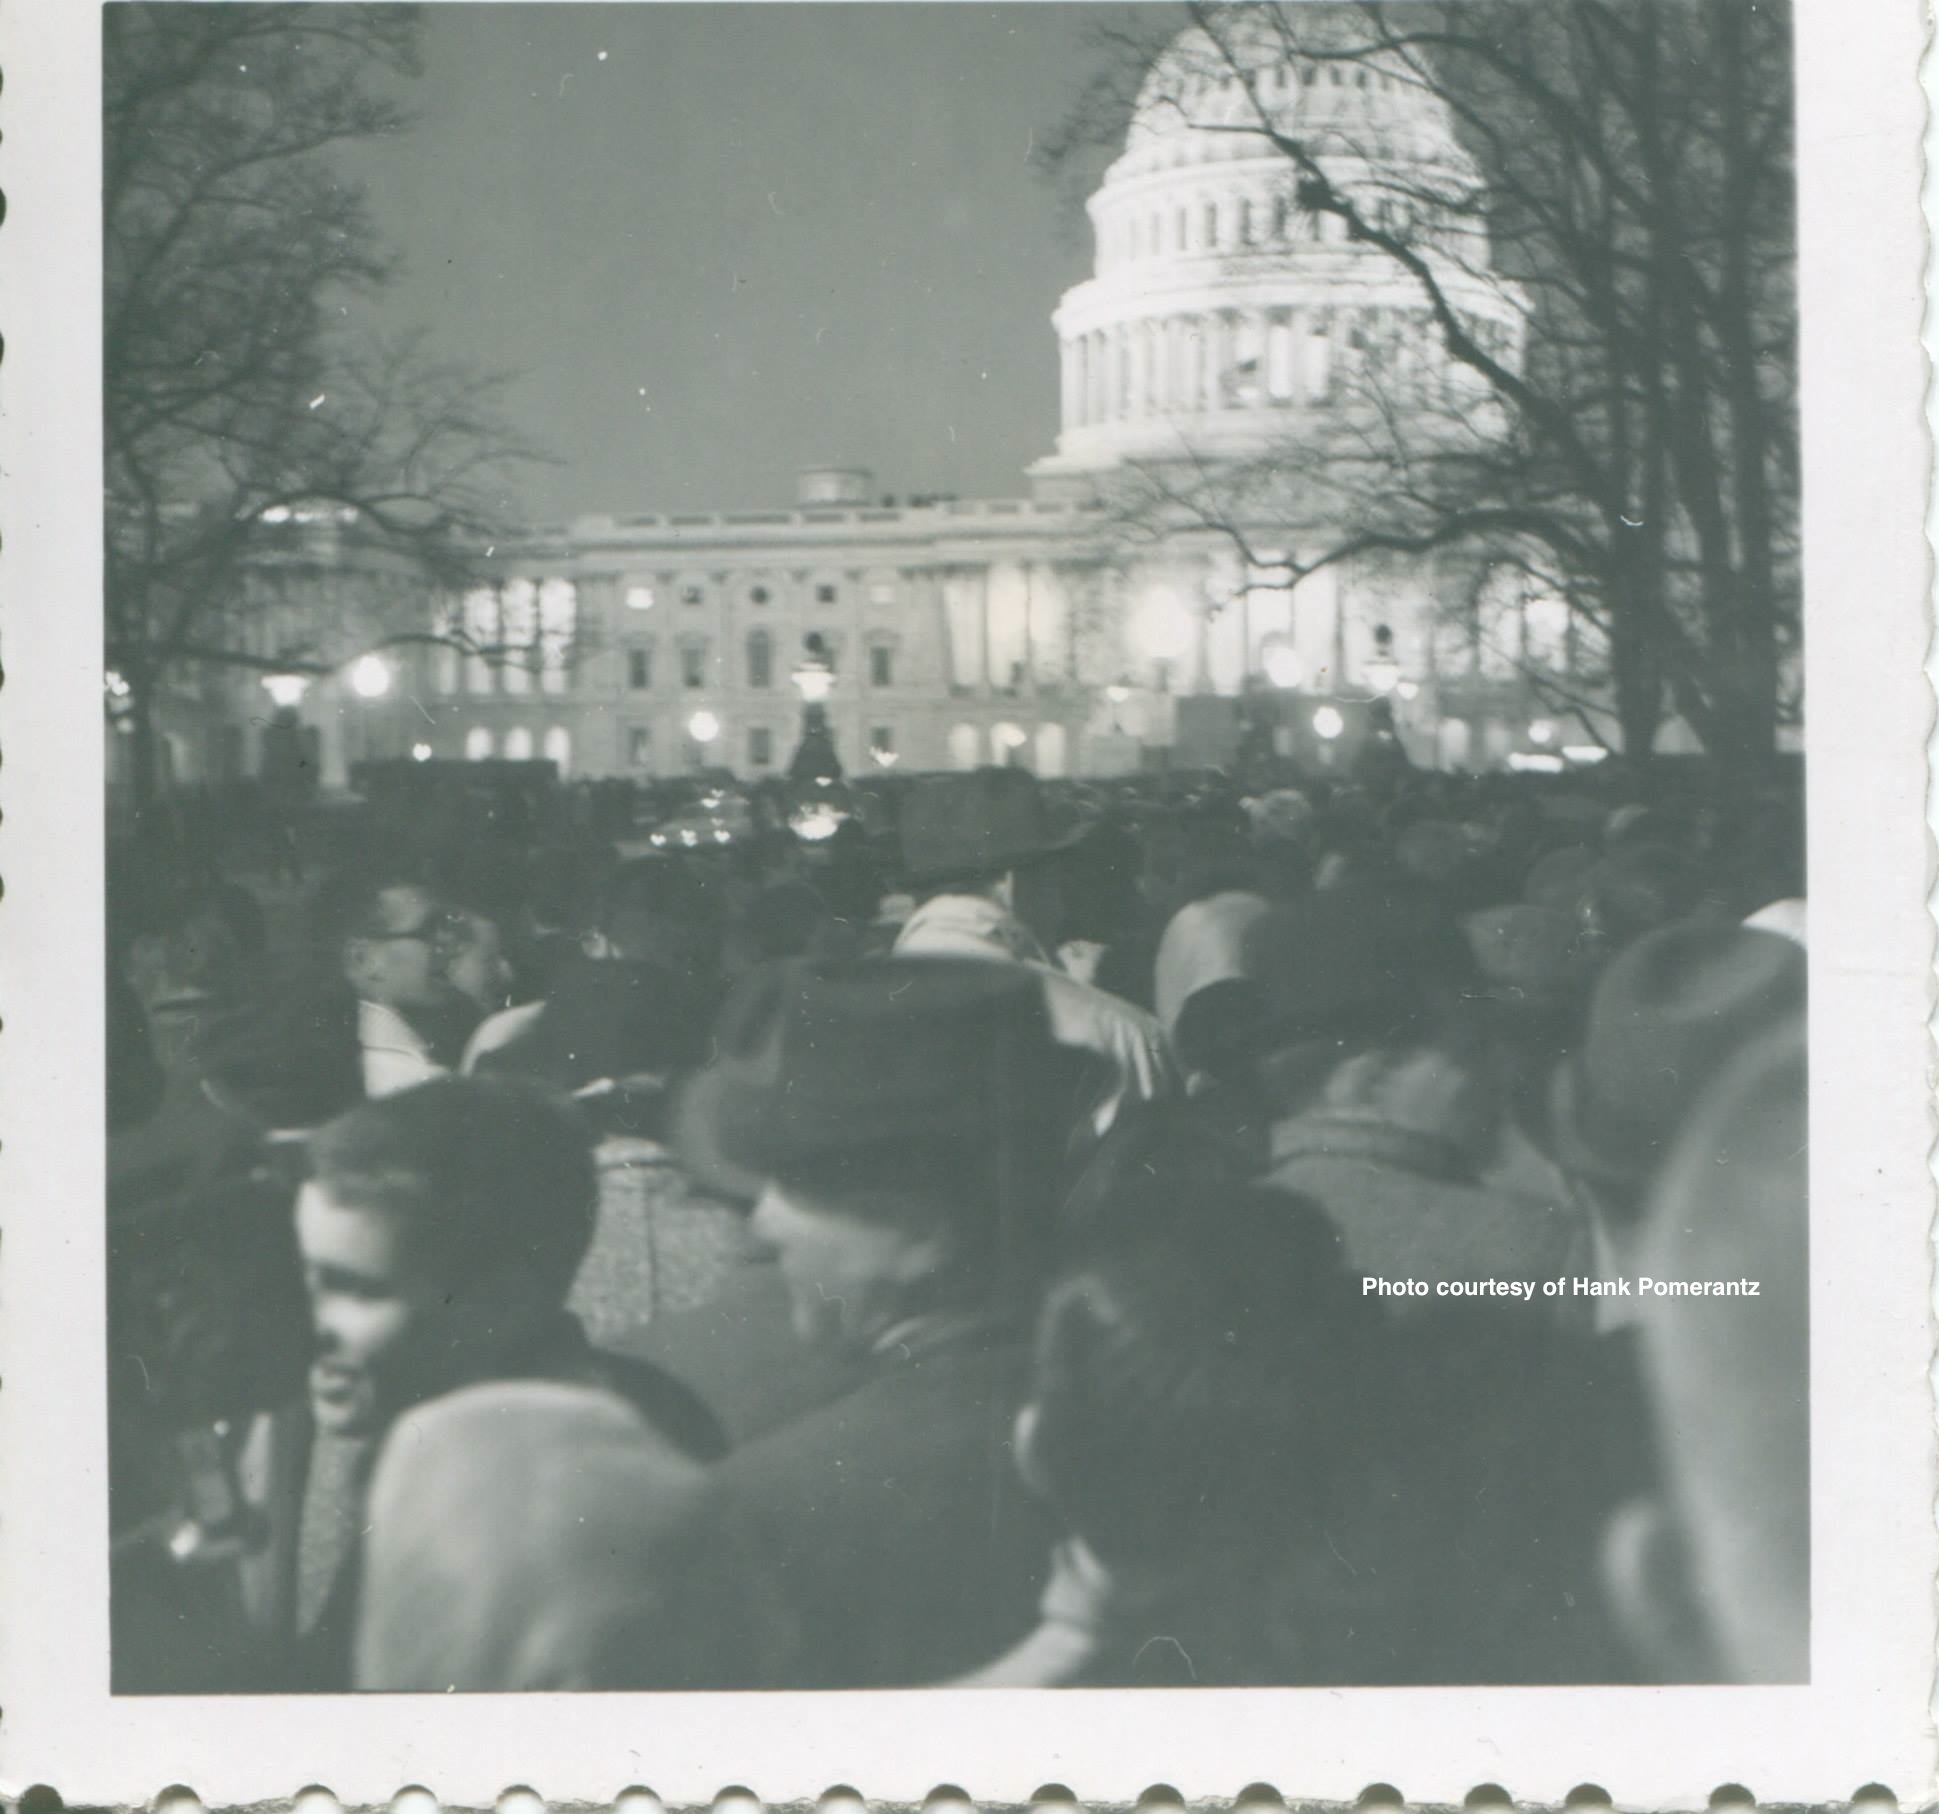 Washington DC, after the death of JFK. Photo courtesy of Hank Pomerantz.